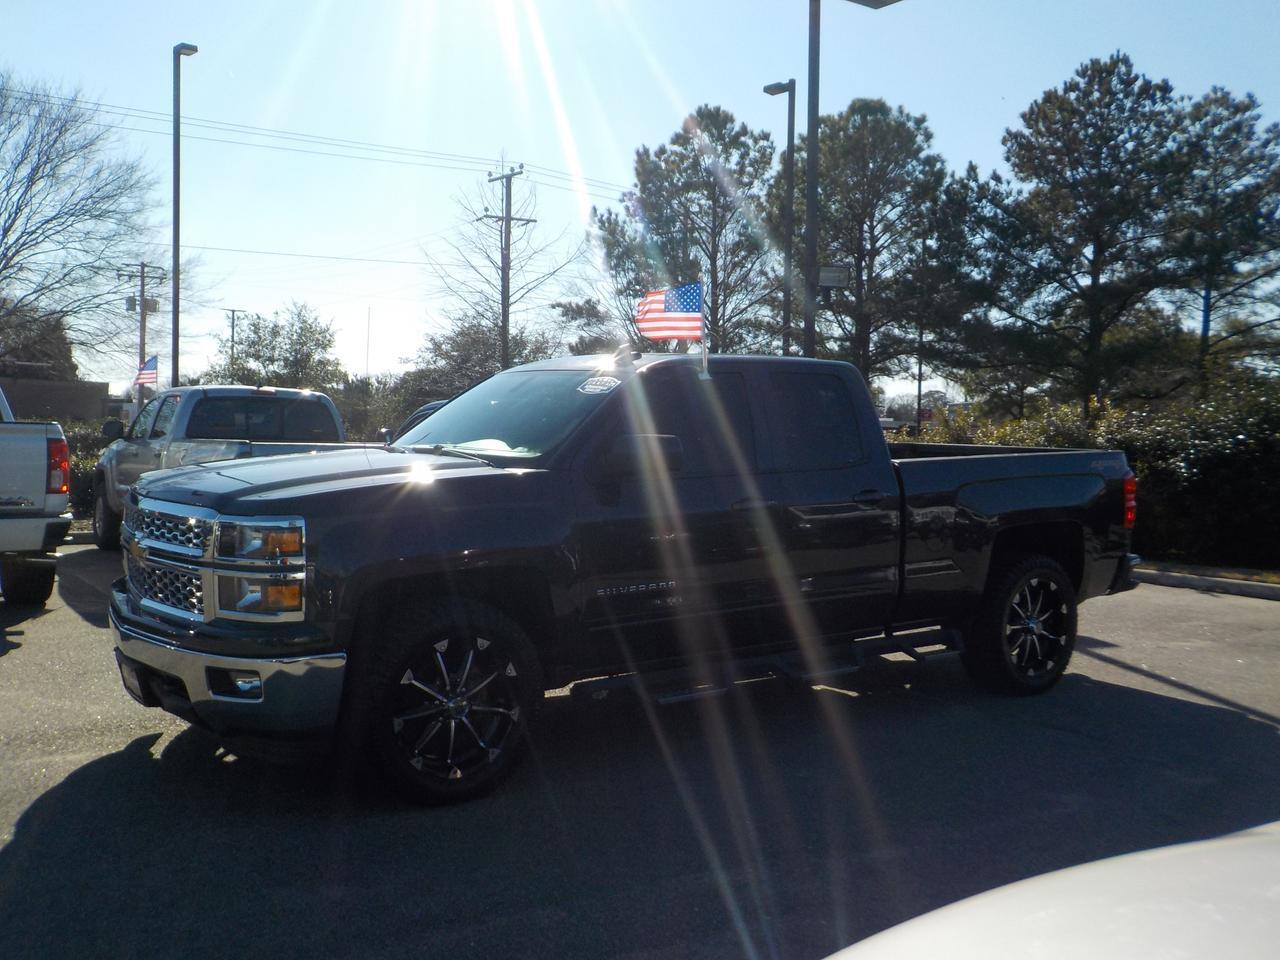 2015 CHEVROLET SILVERADO 1500 DOUBLE CAB LT 4X4, TOW PACKAGE, BACKUP CAMERA, REMOTE START, NAVIGATION, ONLY 40K MILES! Virginia Beach VA